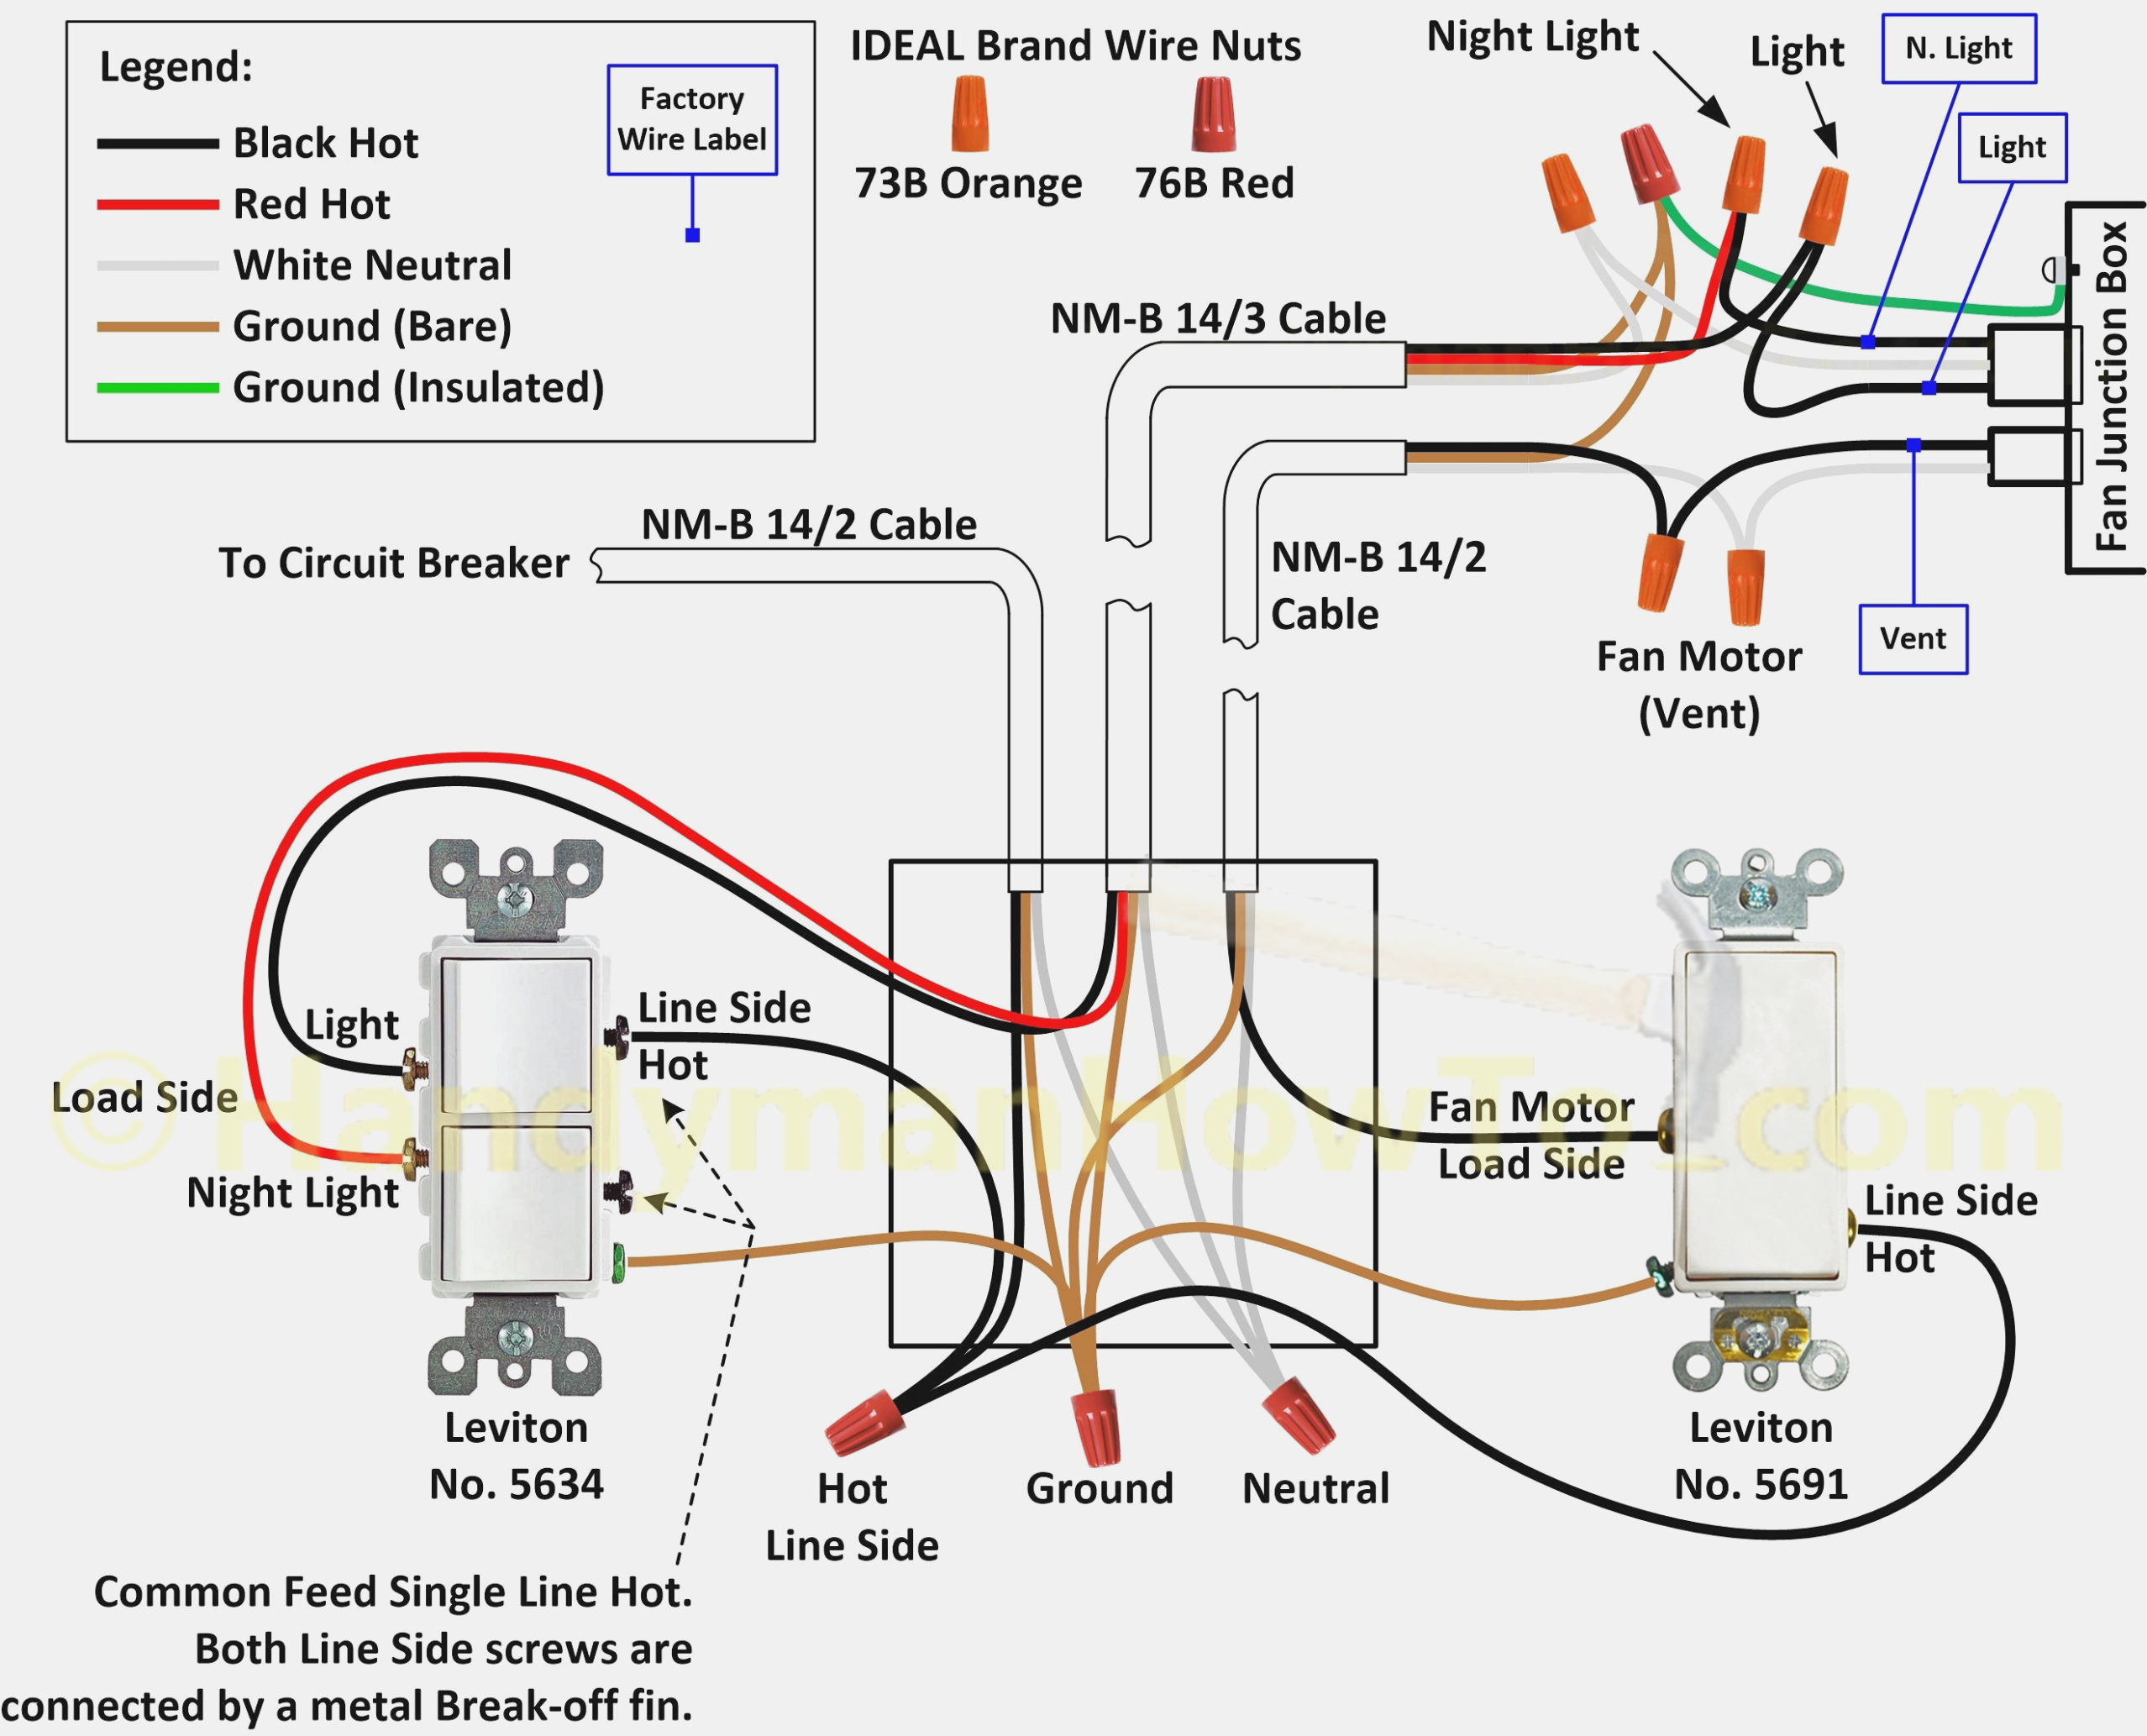 Irrigation Pump Wiring Diagram 240V | Wiring Diagram - Pump Start Relay Wiring Diagram